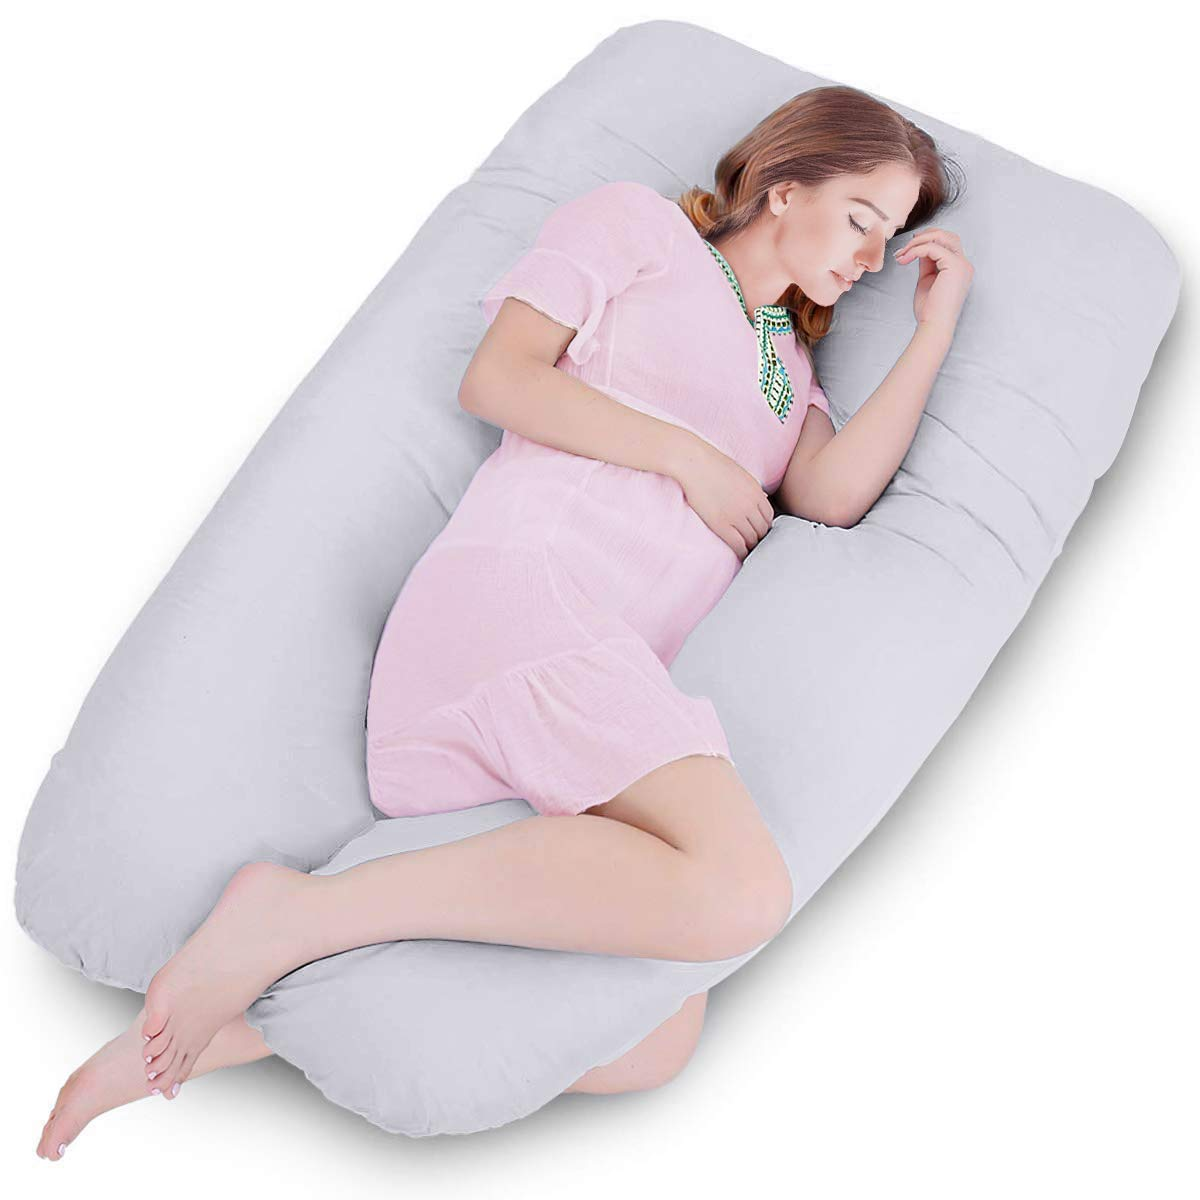 Amagoing 57 inches Pregnancy Pillow, U Shaped Maternity Full Body Pillow for Women with Hip, Leg, Back Pain, Washable Cotton Cover Included (Grey)